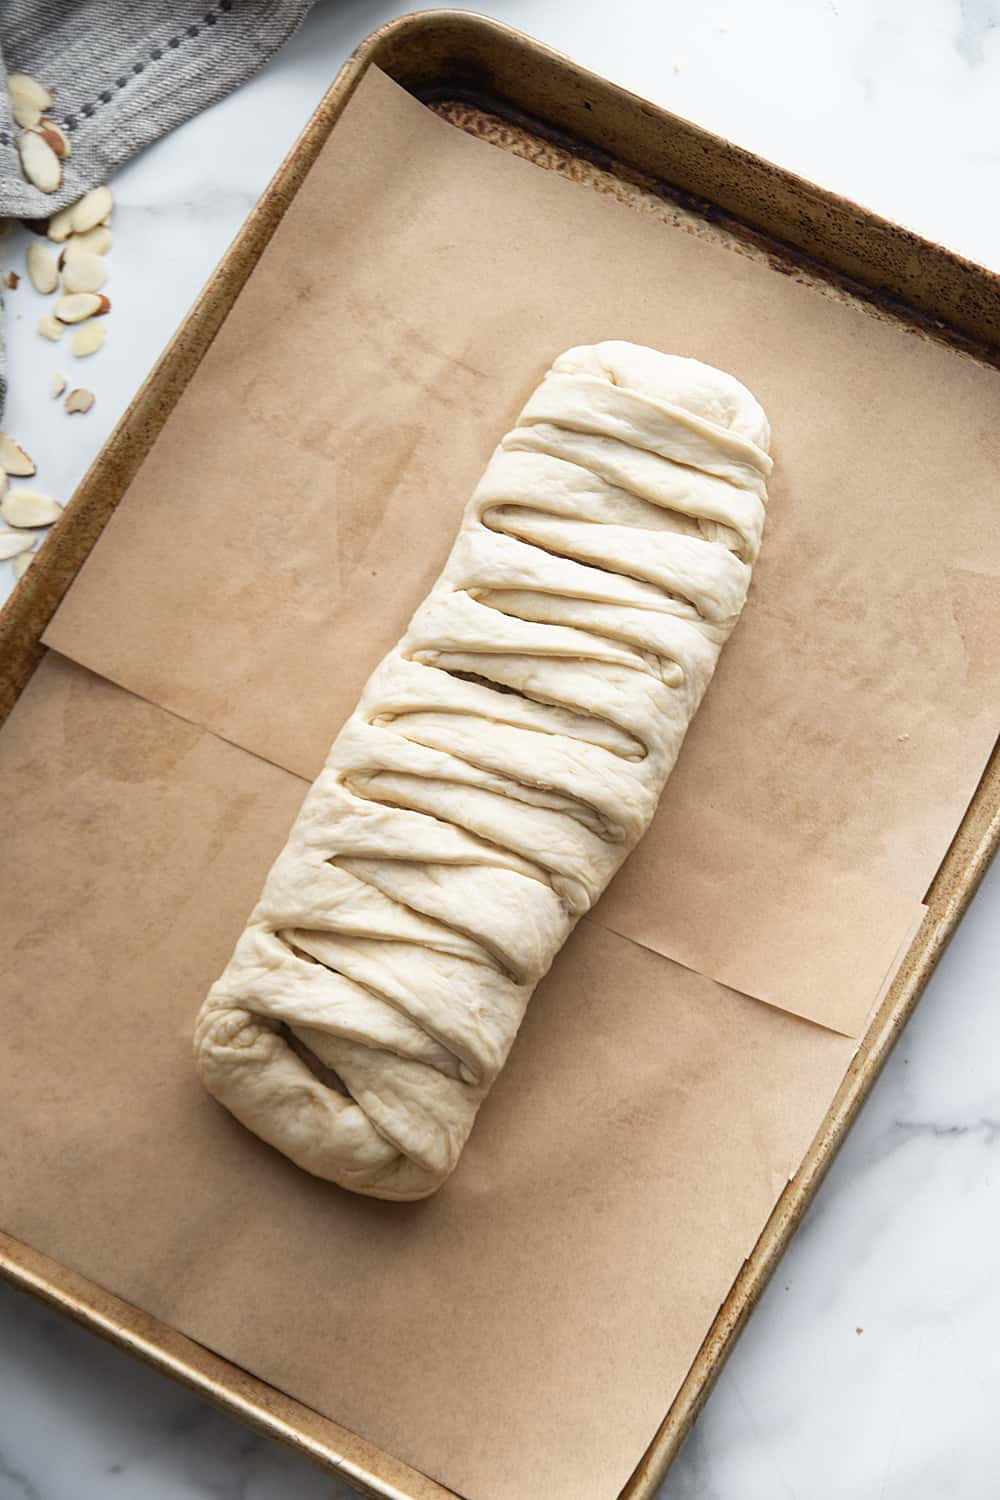 Easy Almond Braid - This easy almond braid is simple *and* totally scrumptious. Good luck not eating the entire beautifully braided dessert in one sitting! #halfscratched #dessert #brunch #almond #almonddessert #baking #almondbraid #braideddessert #recipe #dessertrecipe